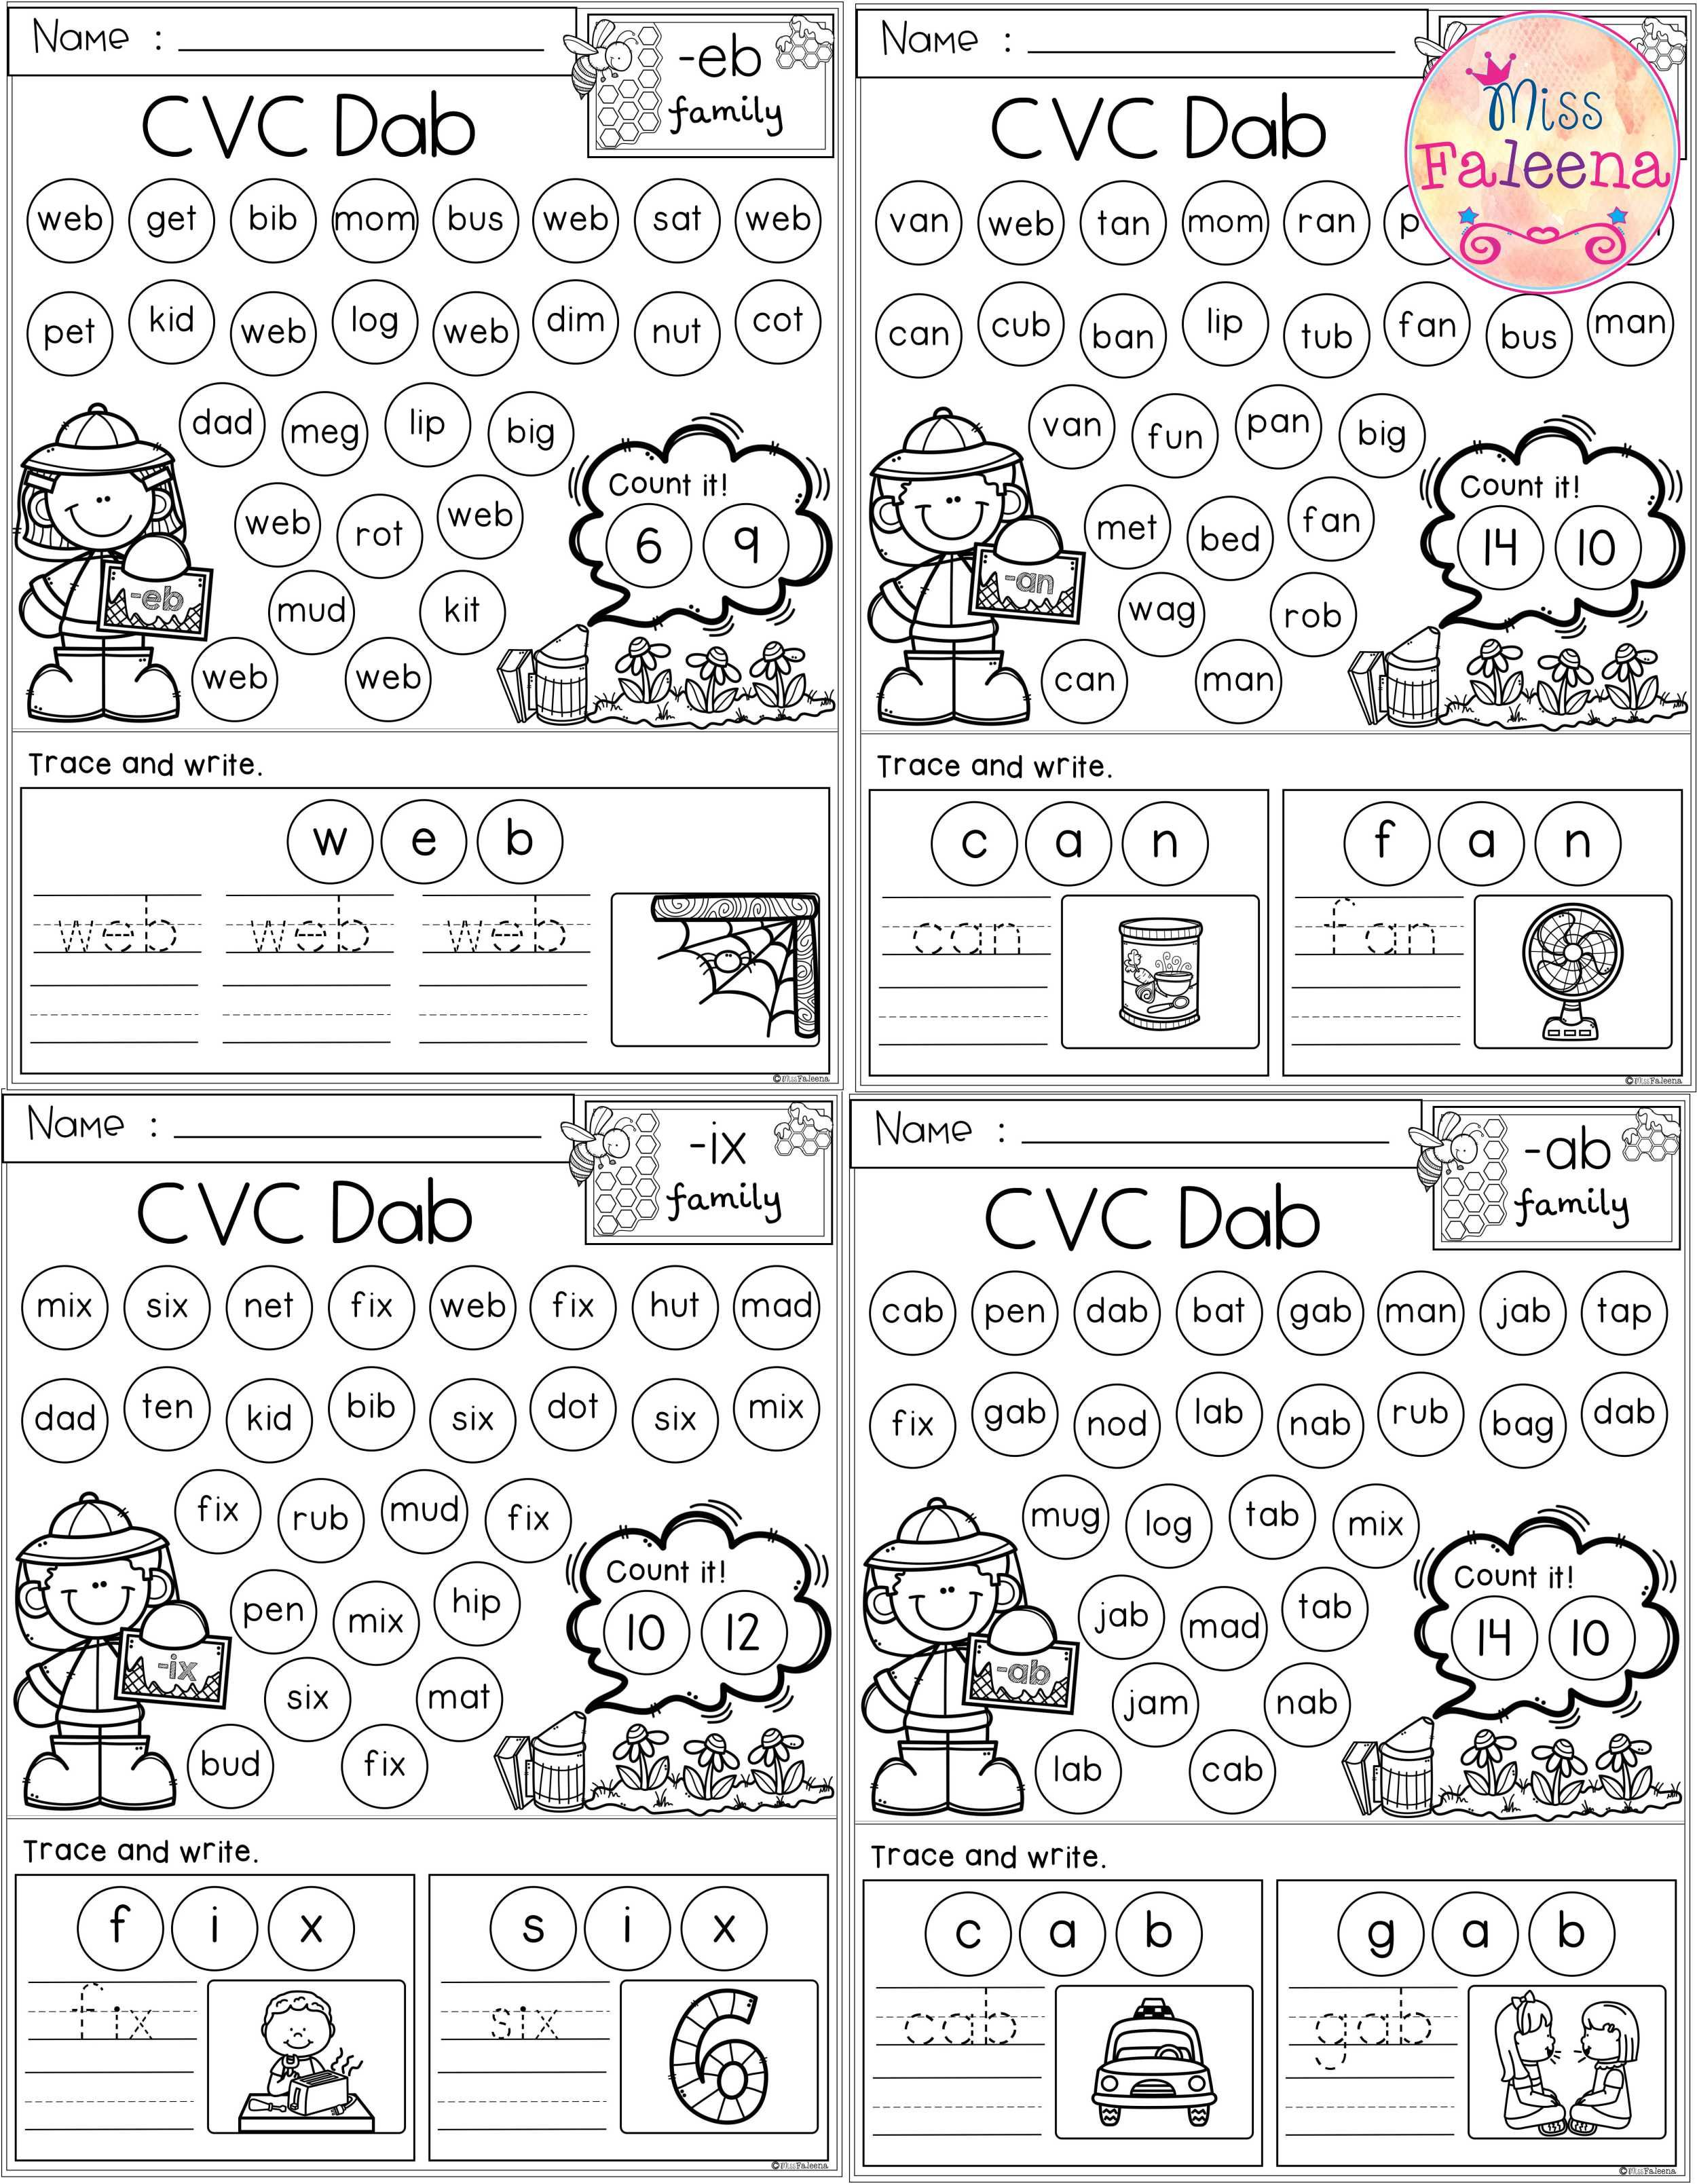 This Product Has 51 Pages Of Cvc Dab Worksheets This